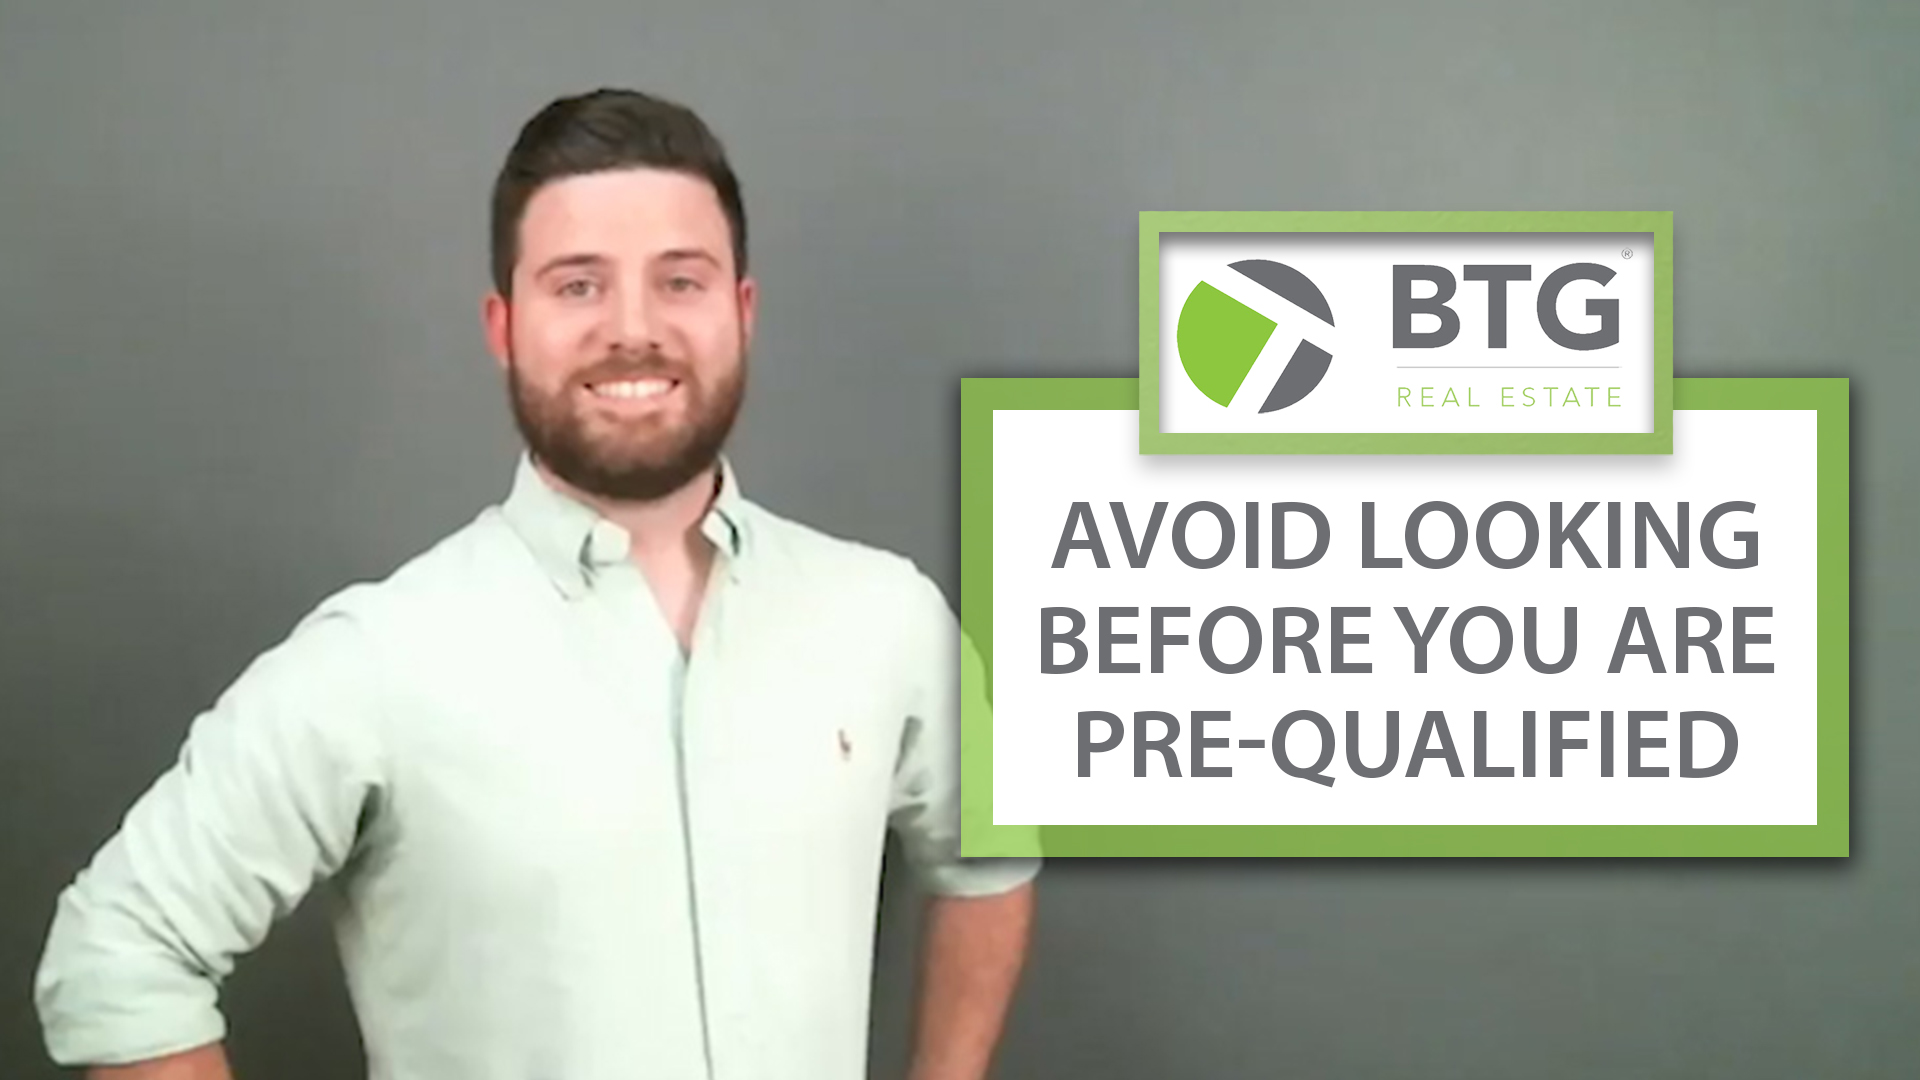 Get Pre-Qualified Before You Look